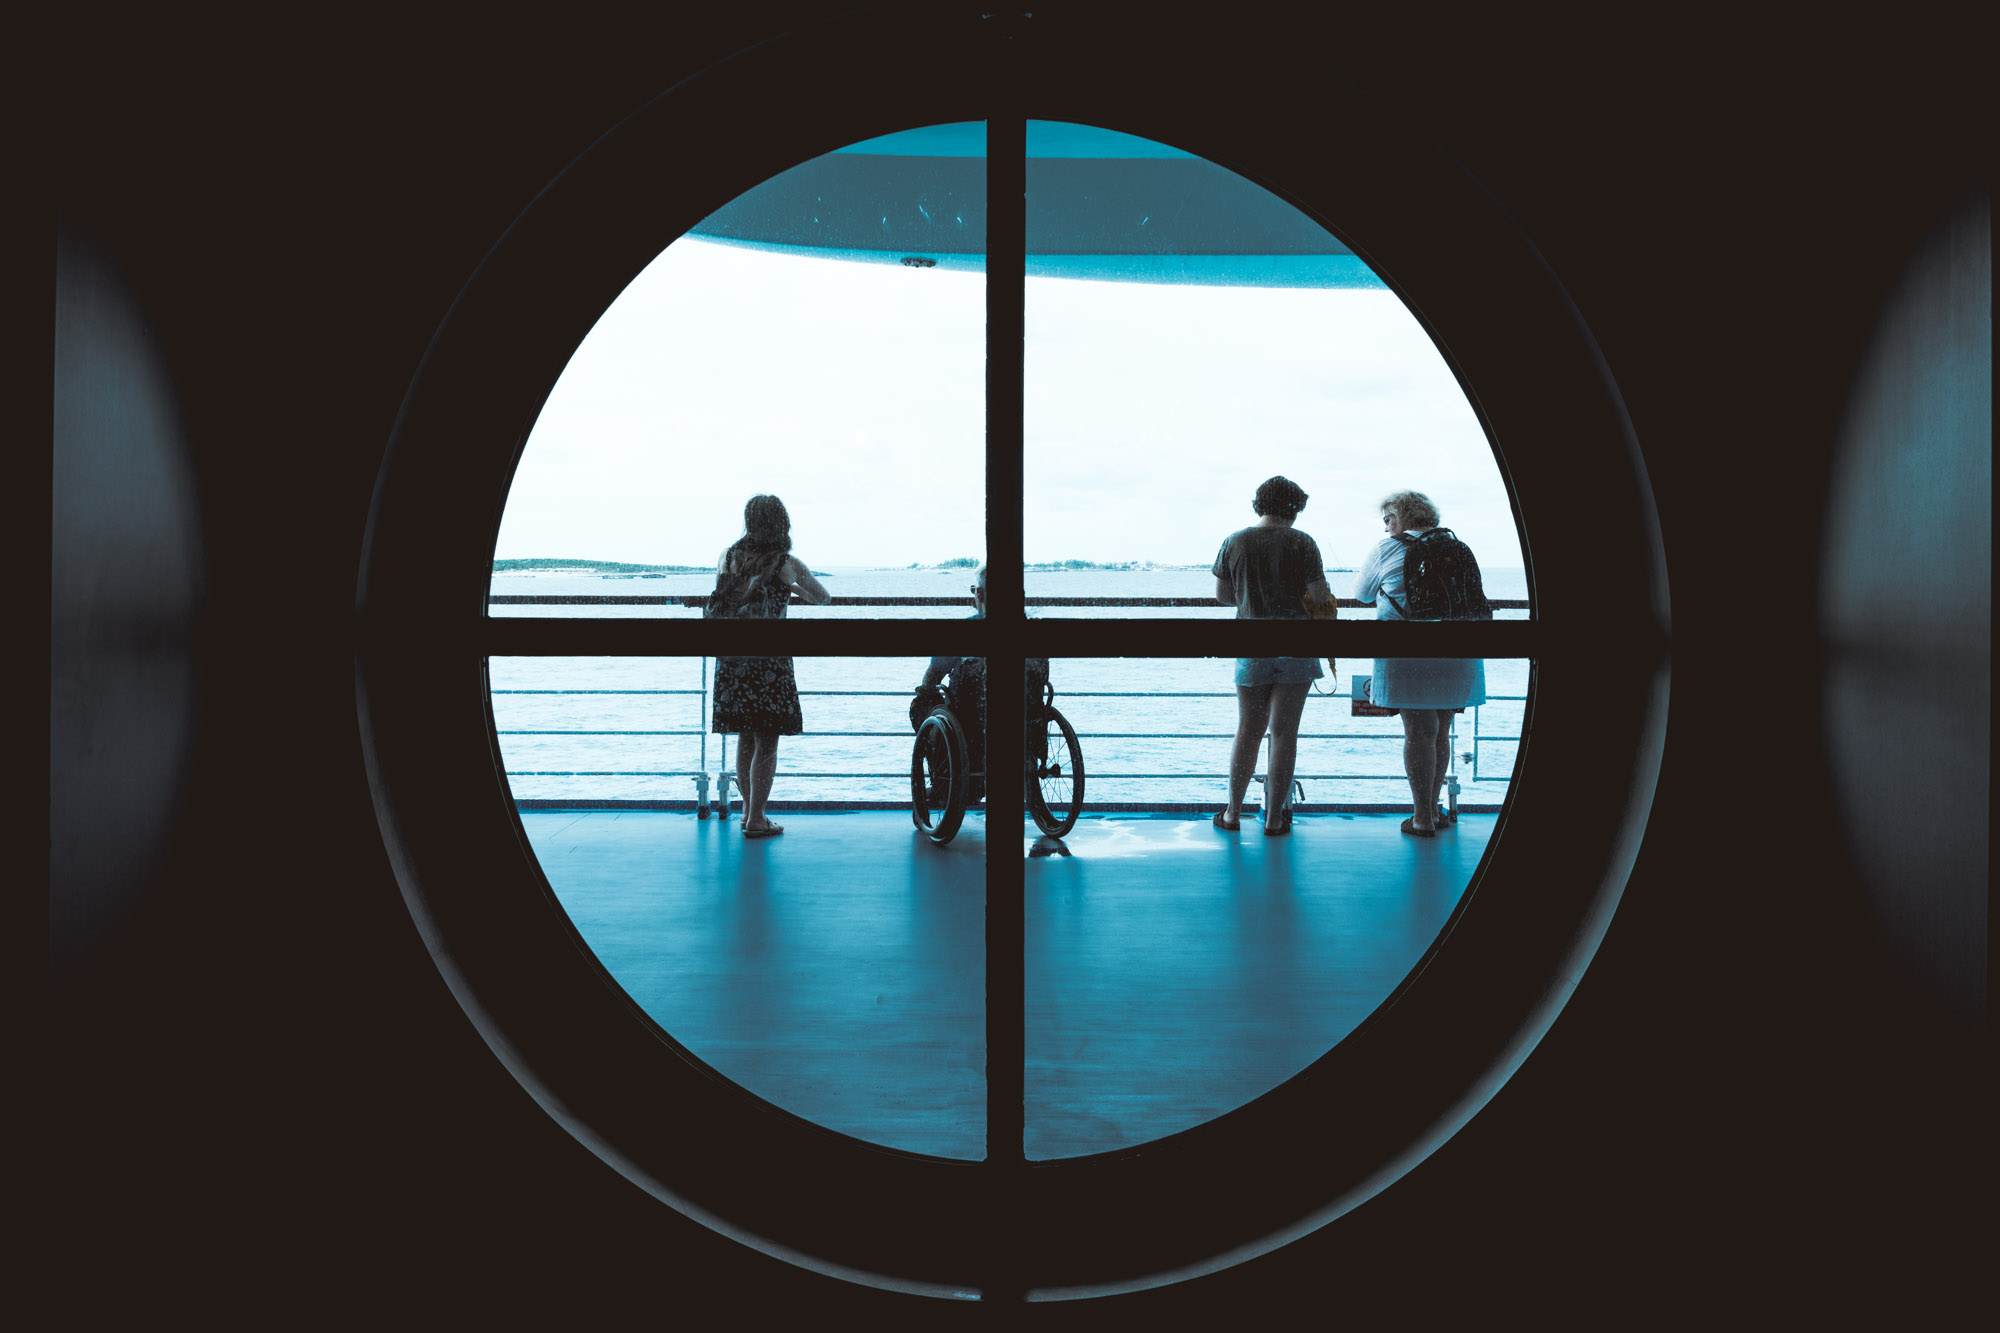 family-wheelchair-through window-norweigan-sky